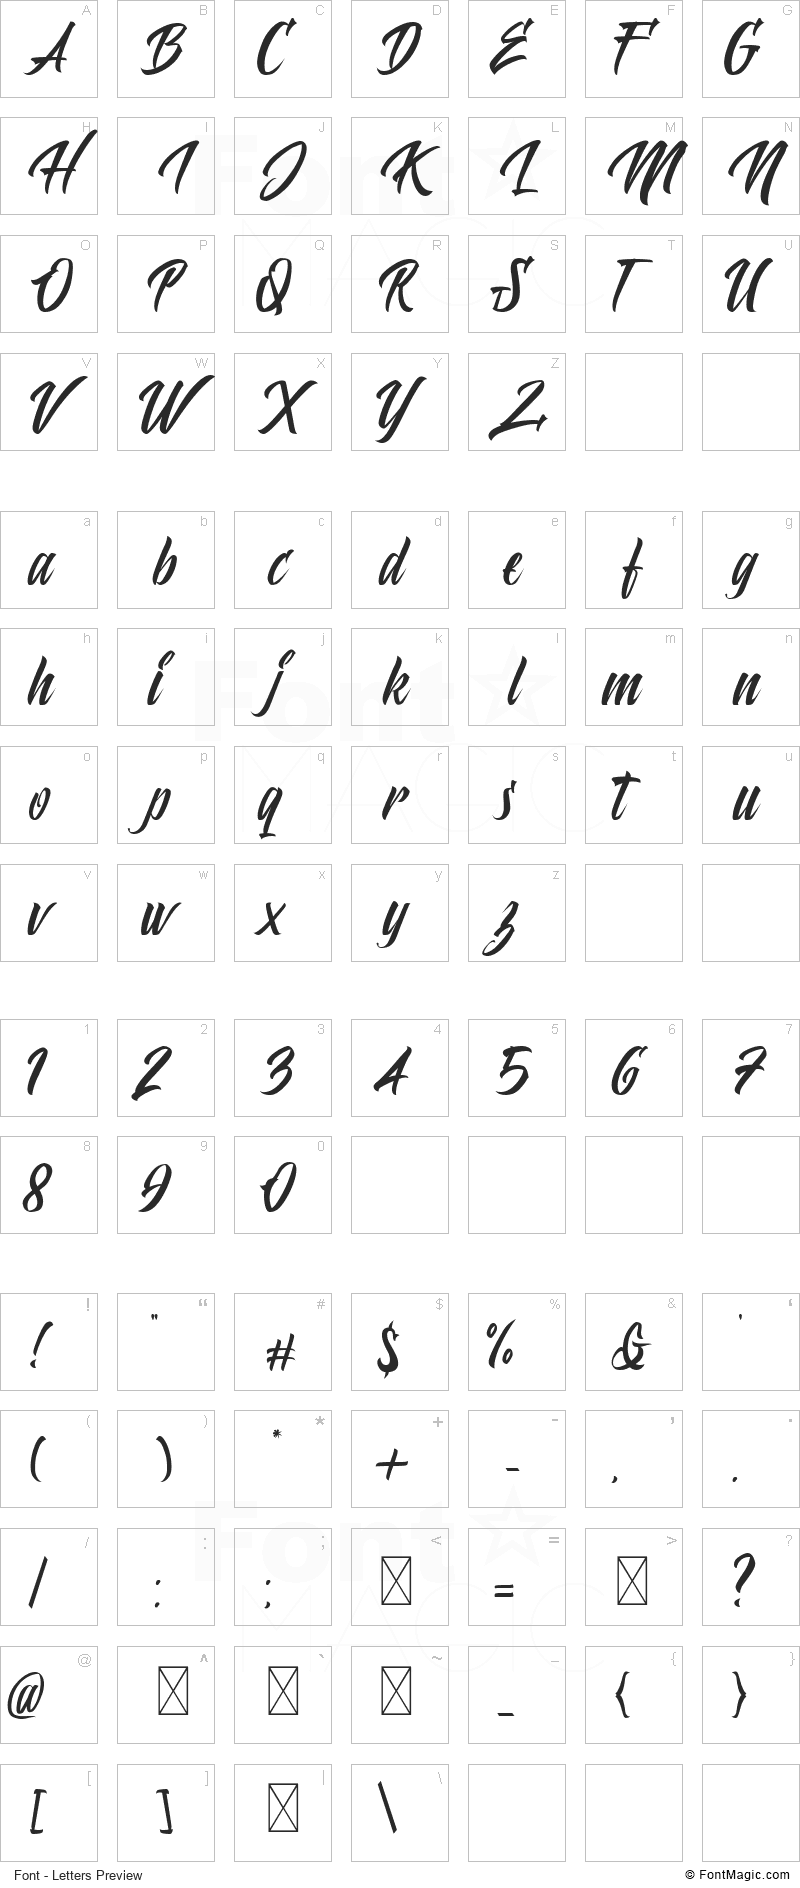 Polaria Font - All Latters Preview Chart